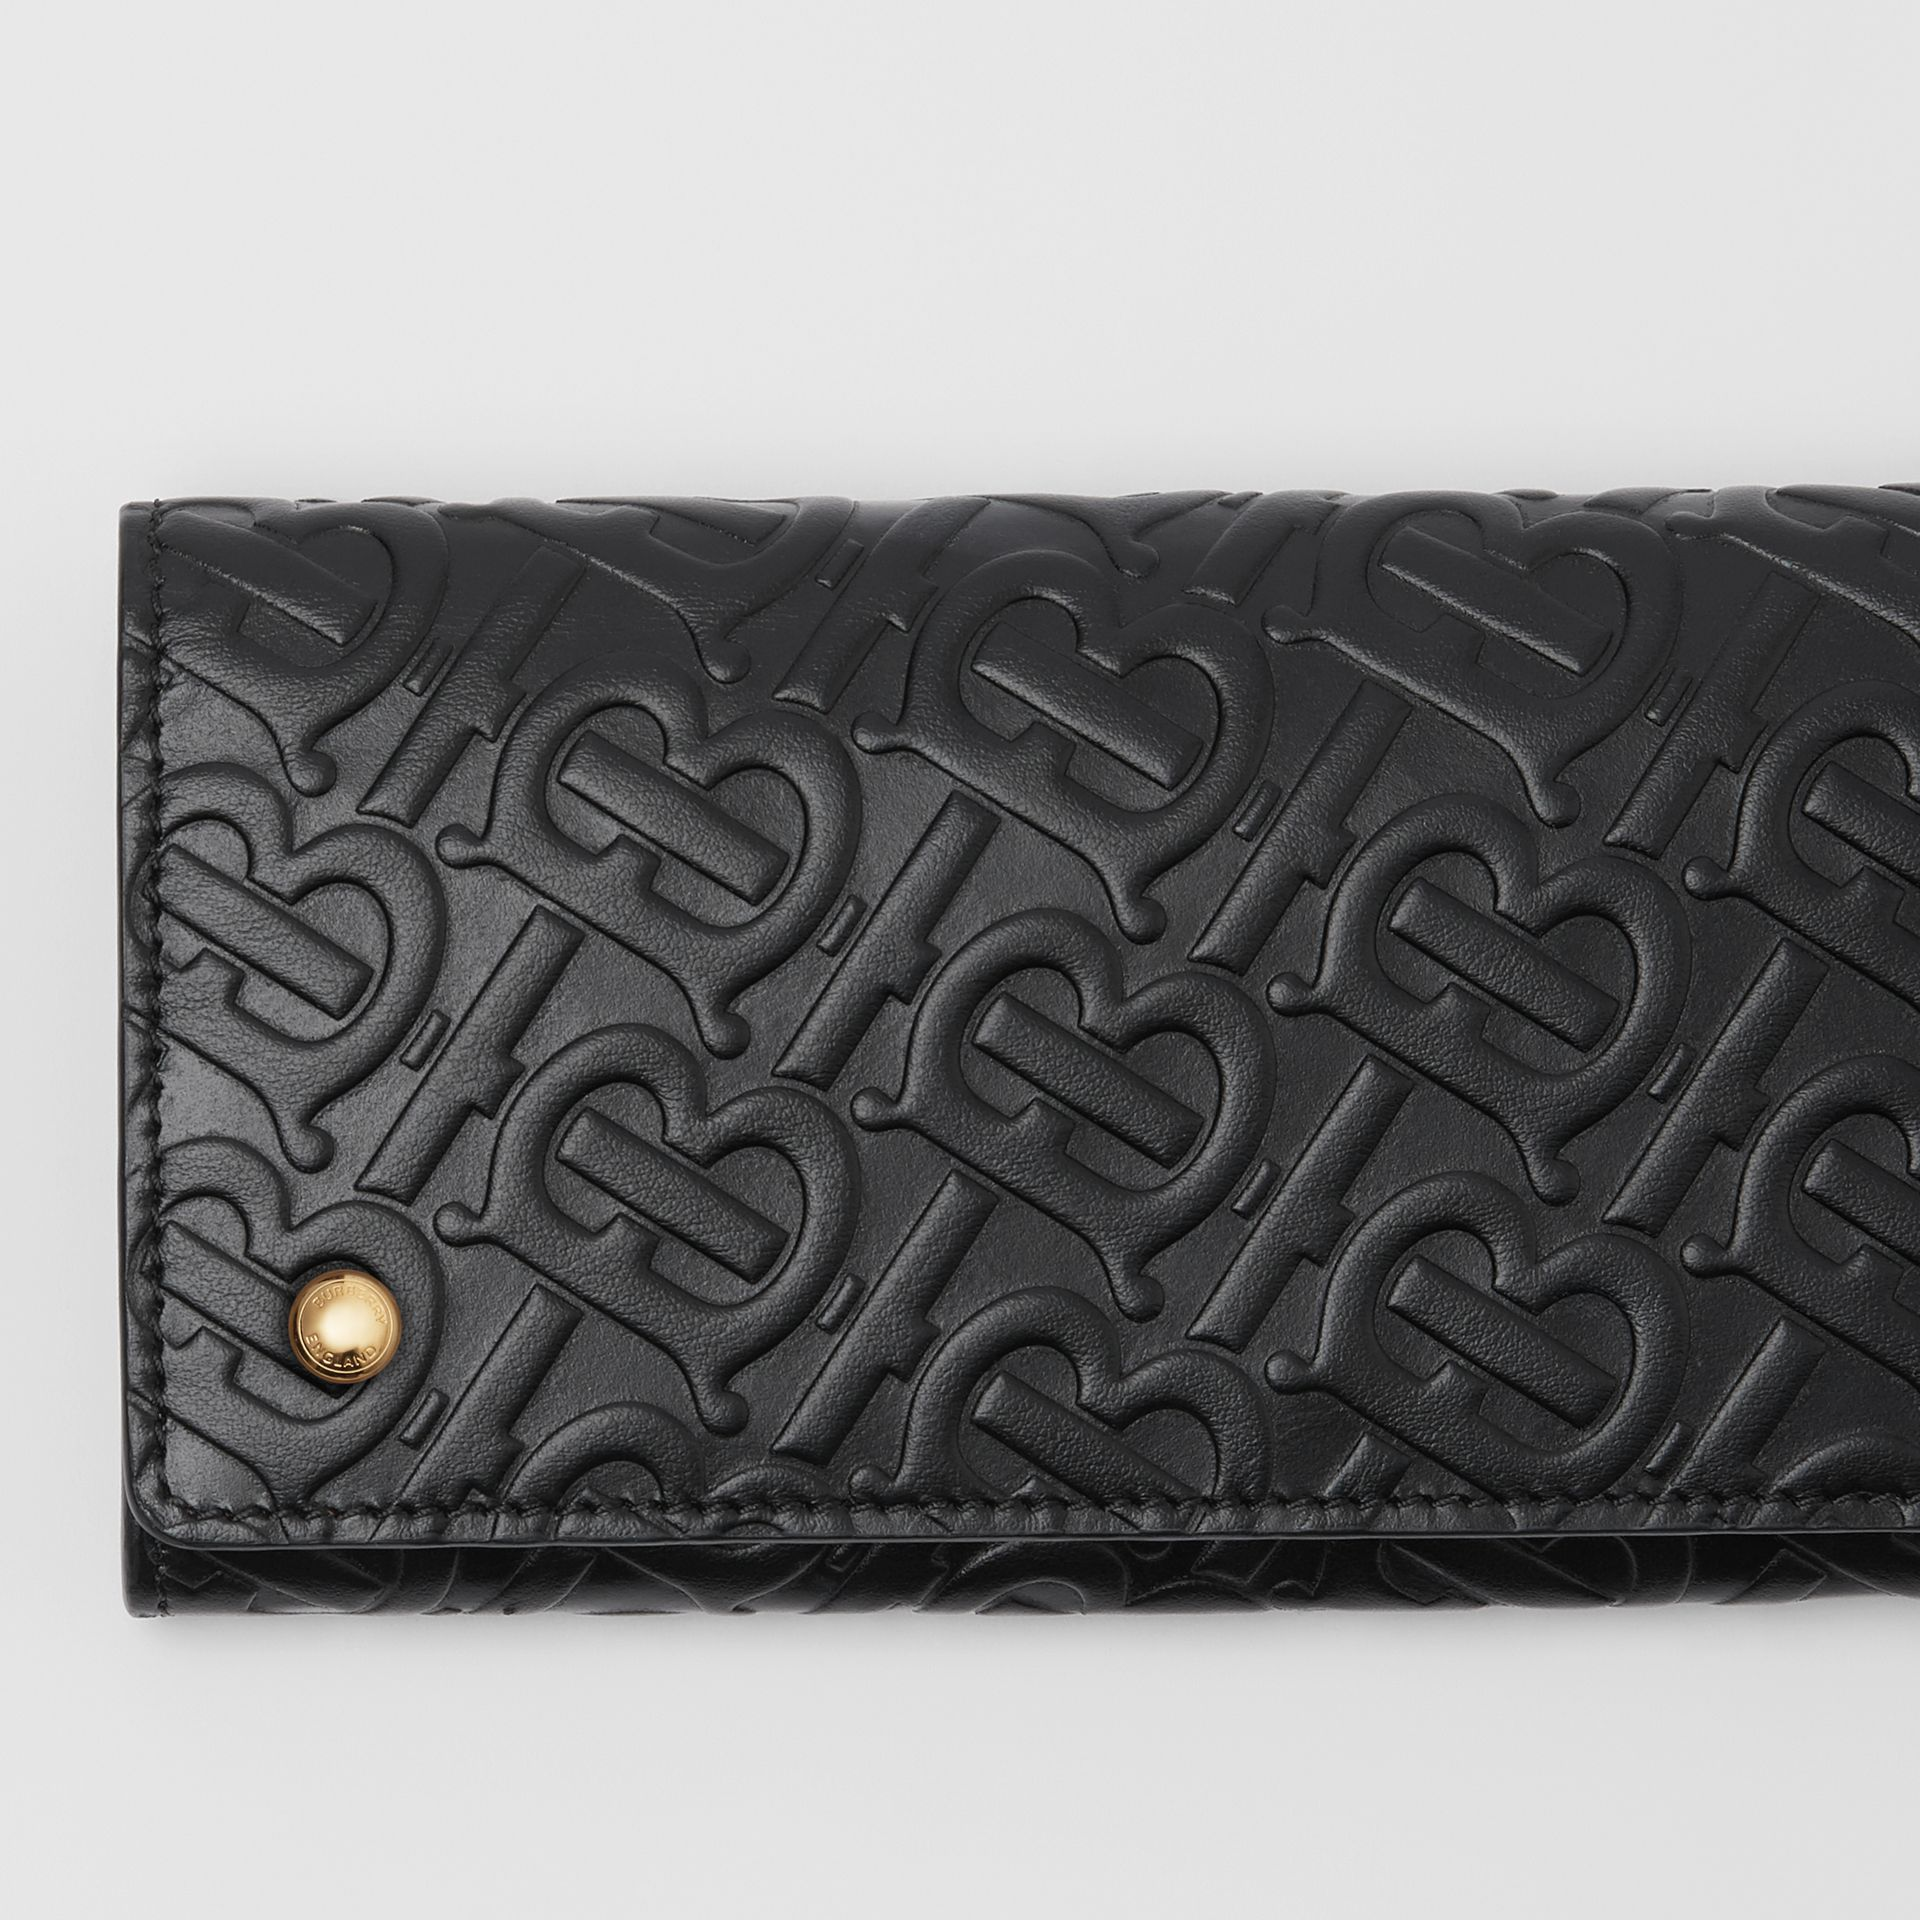 Monogram Leather Continental Wallet in Black - Women | Burberry United Kingdom - gallery image 1